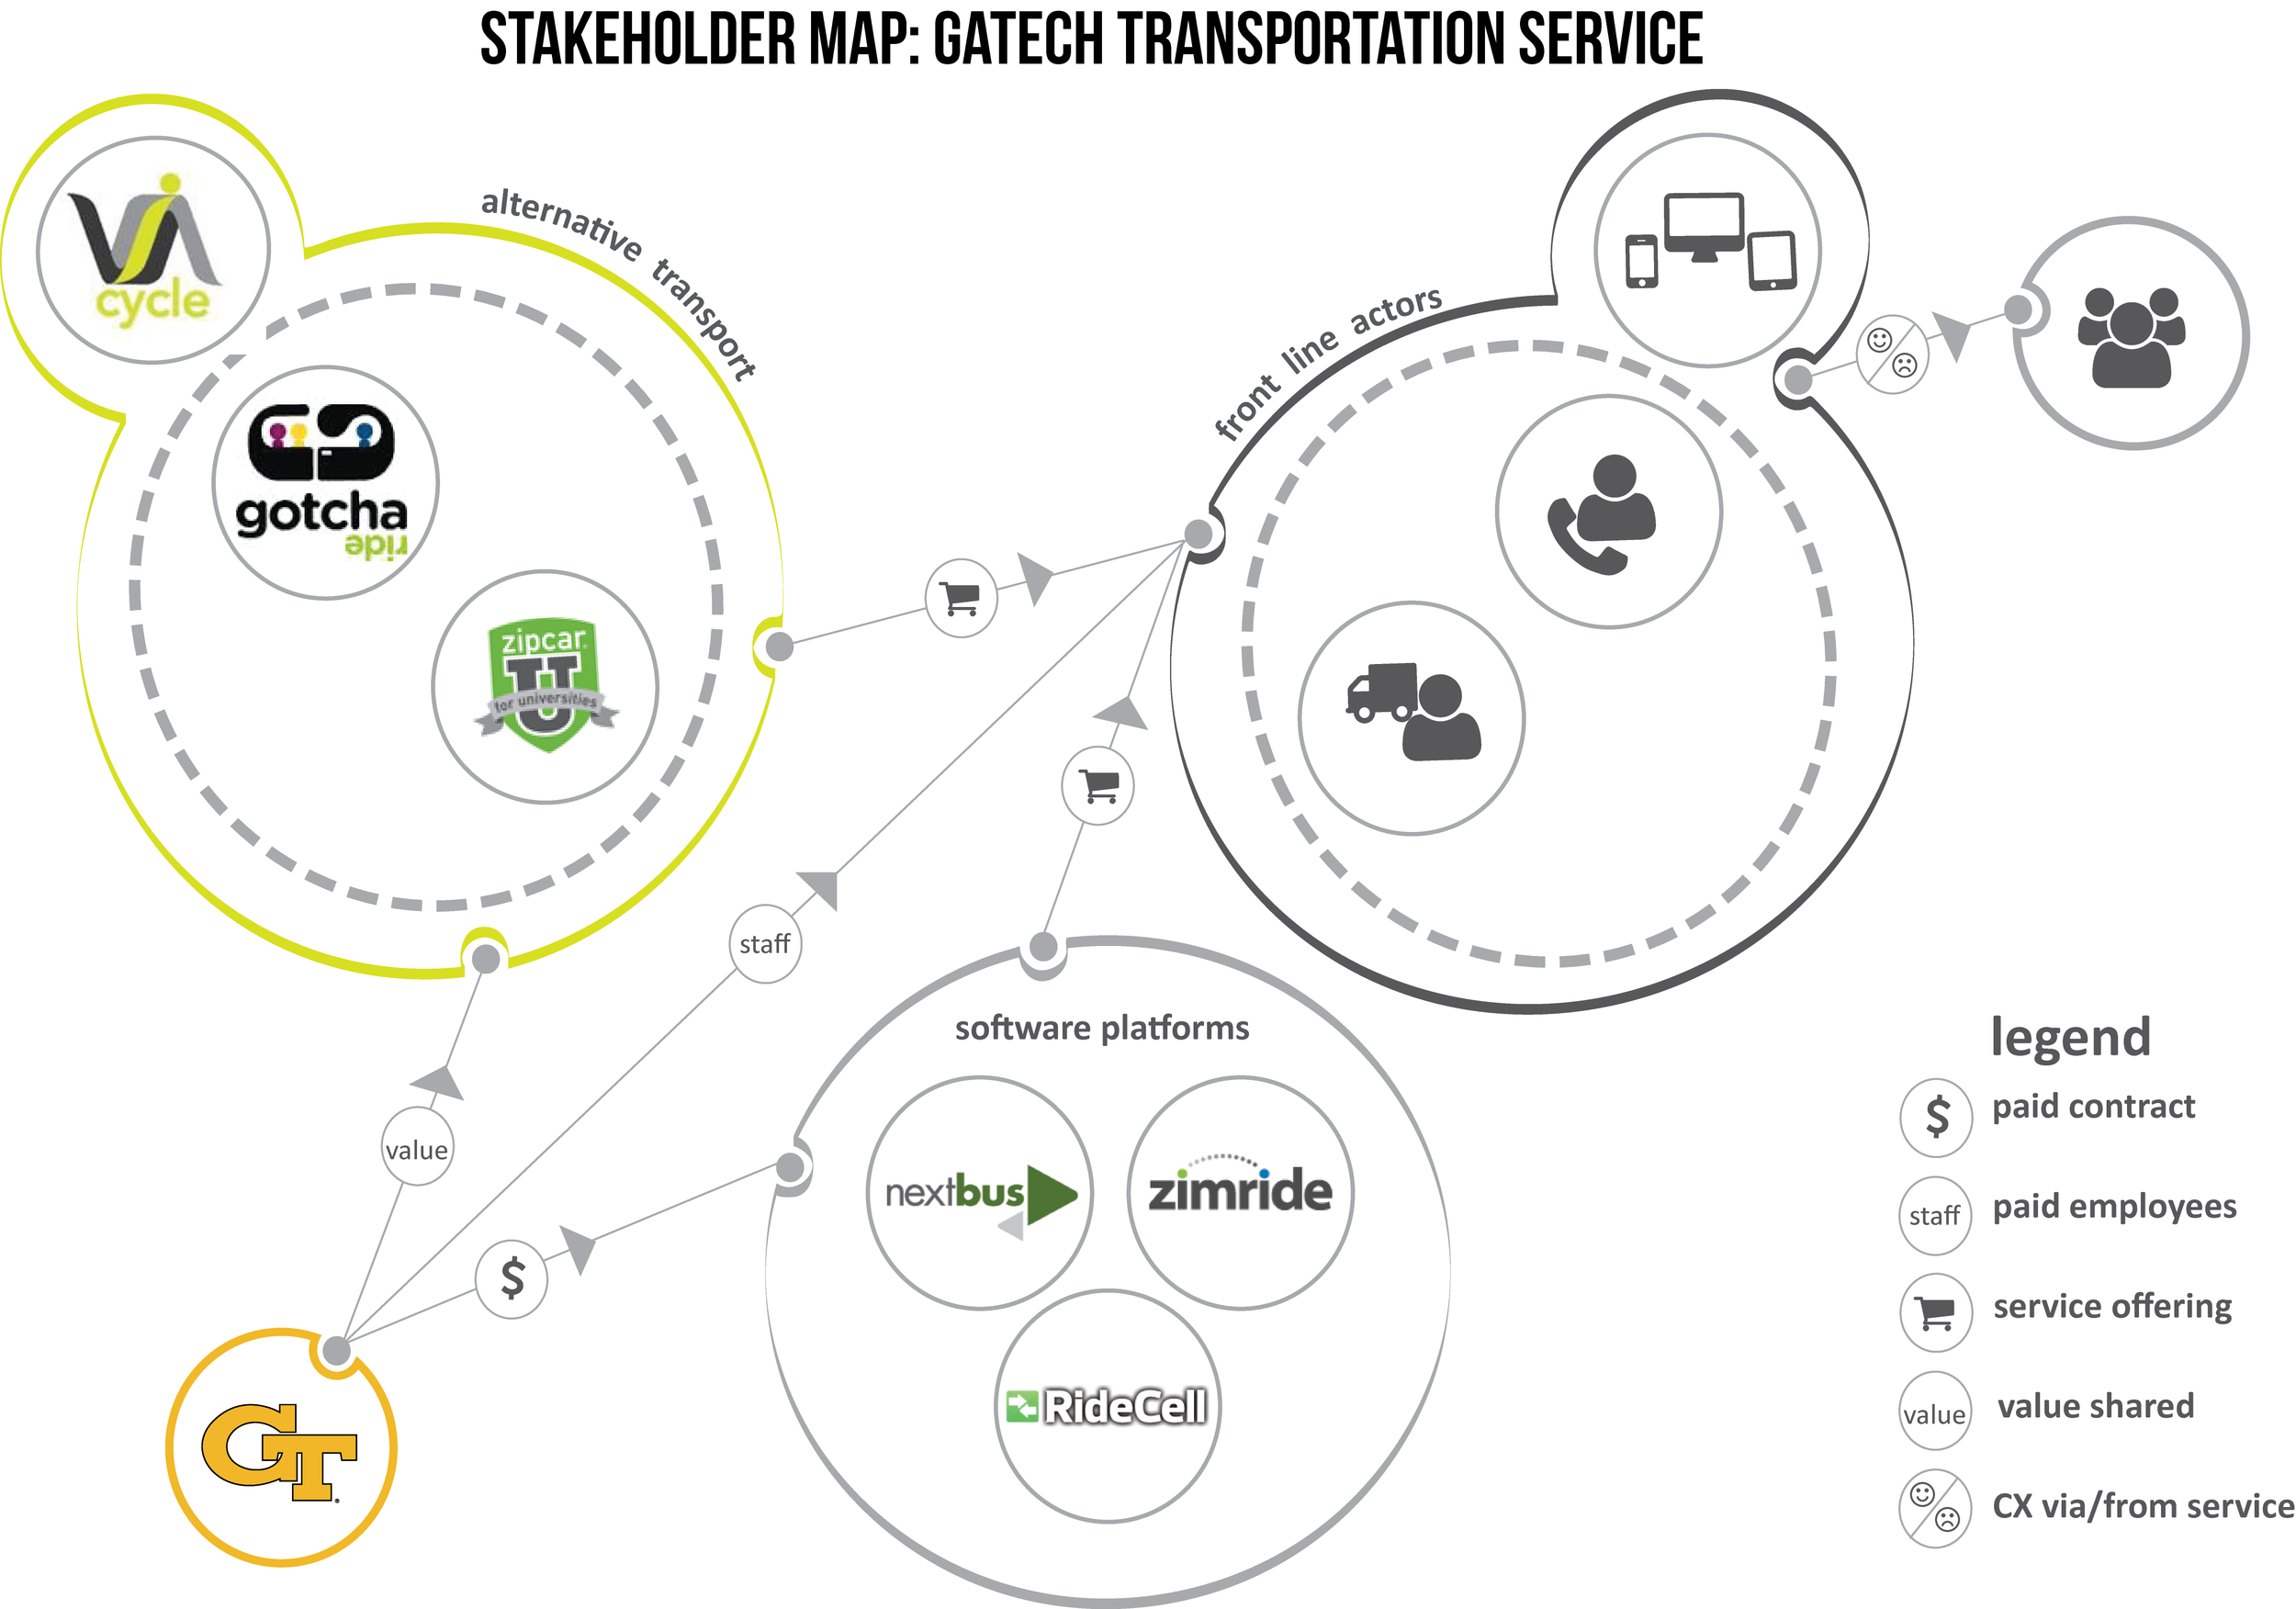 Complete Stakeholder Map